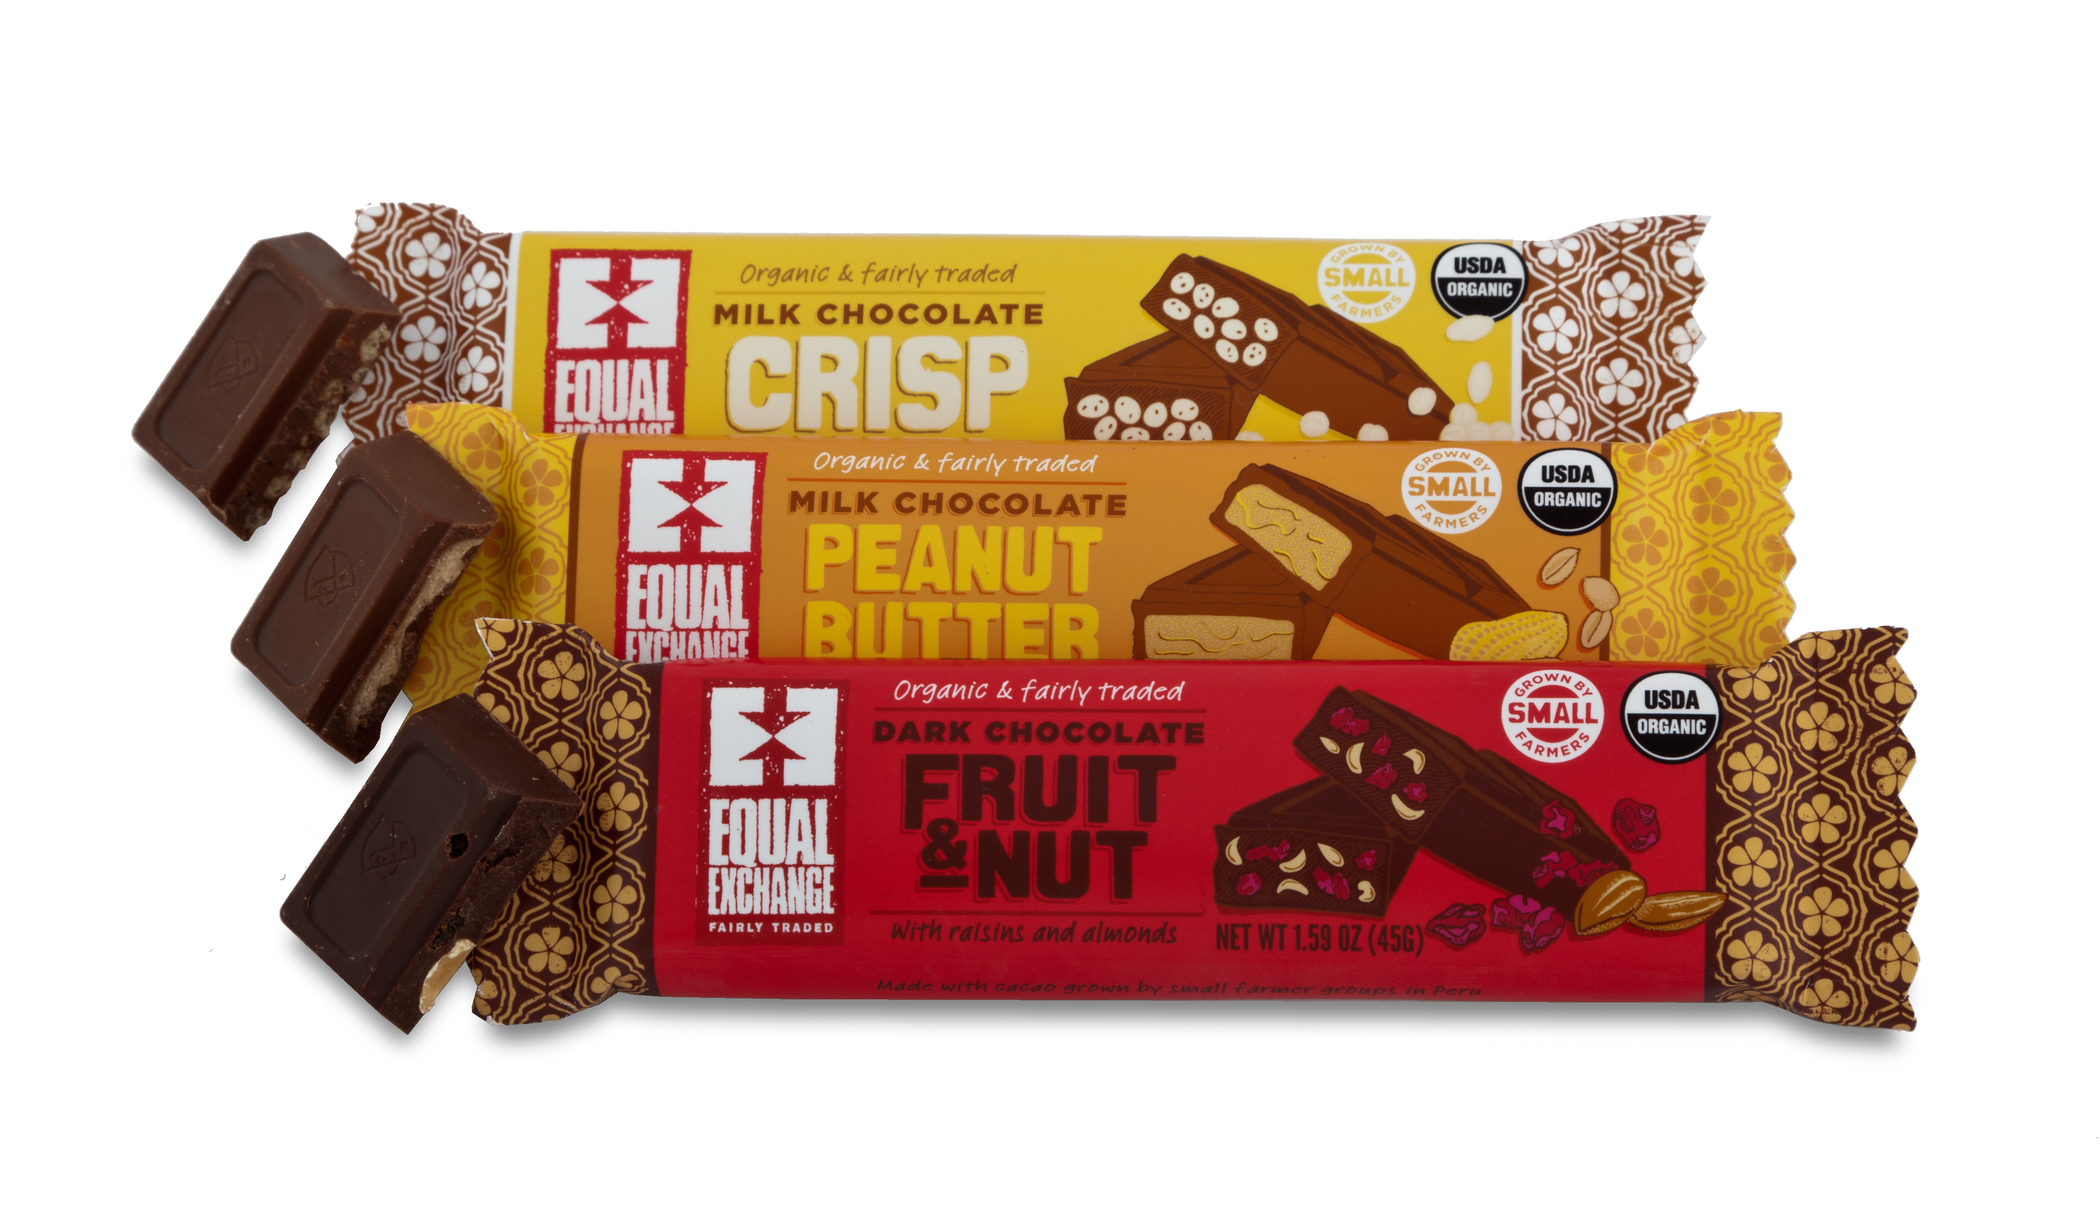 Equal Exchange Launches Organic, Fair Trade Candy Bars for Eco ...